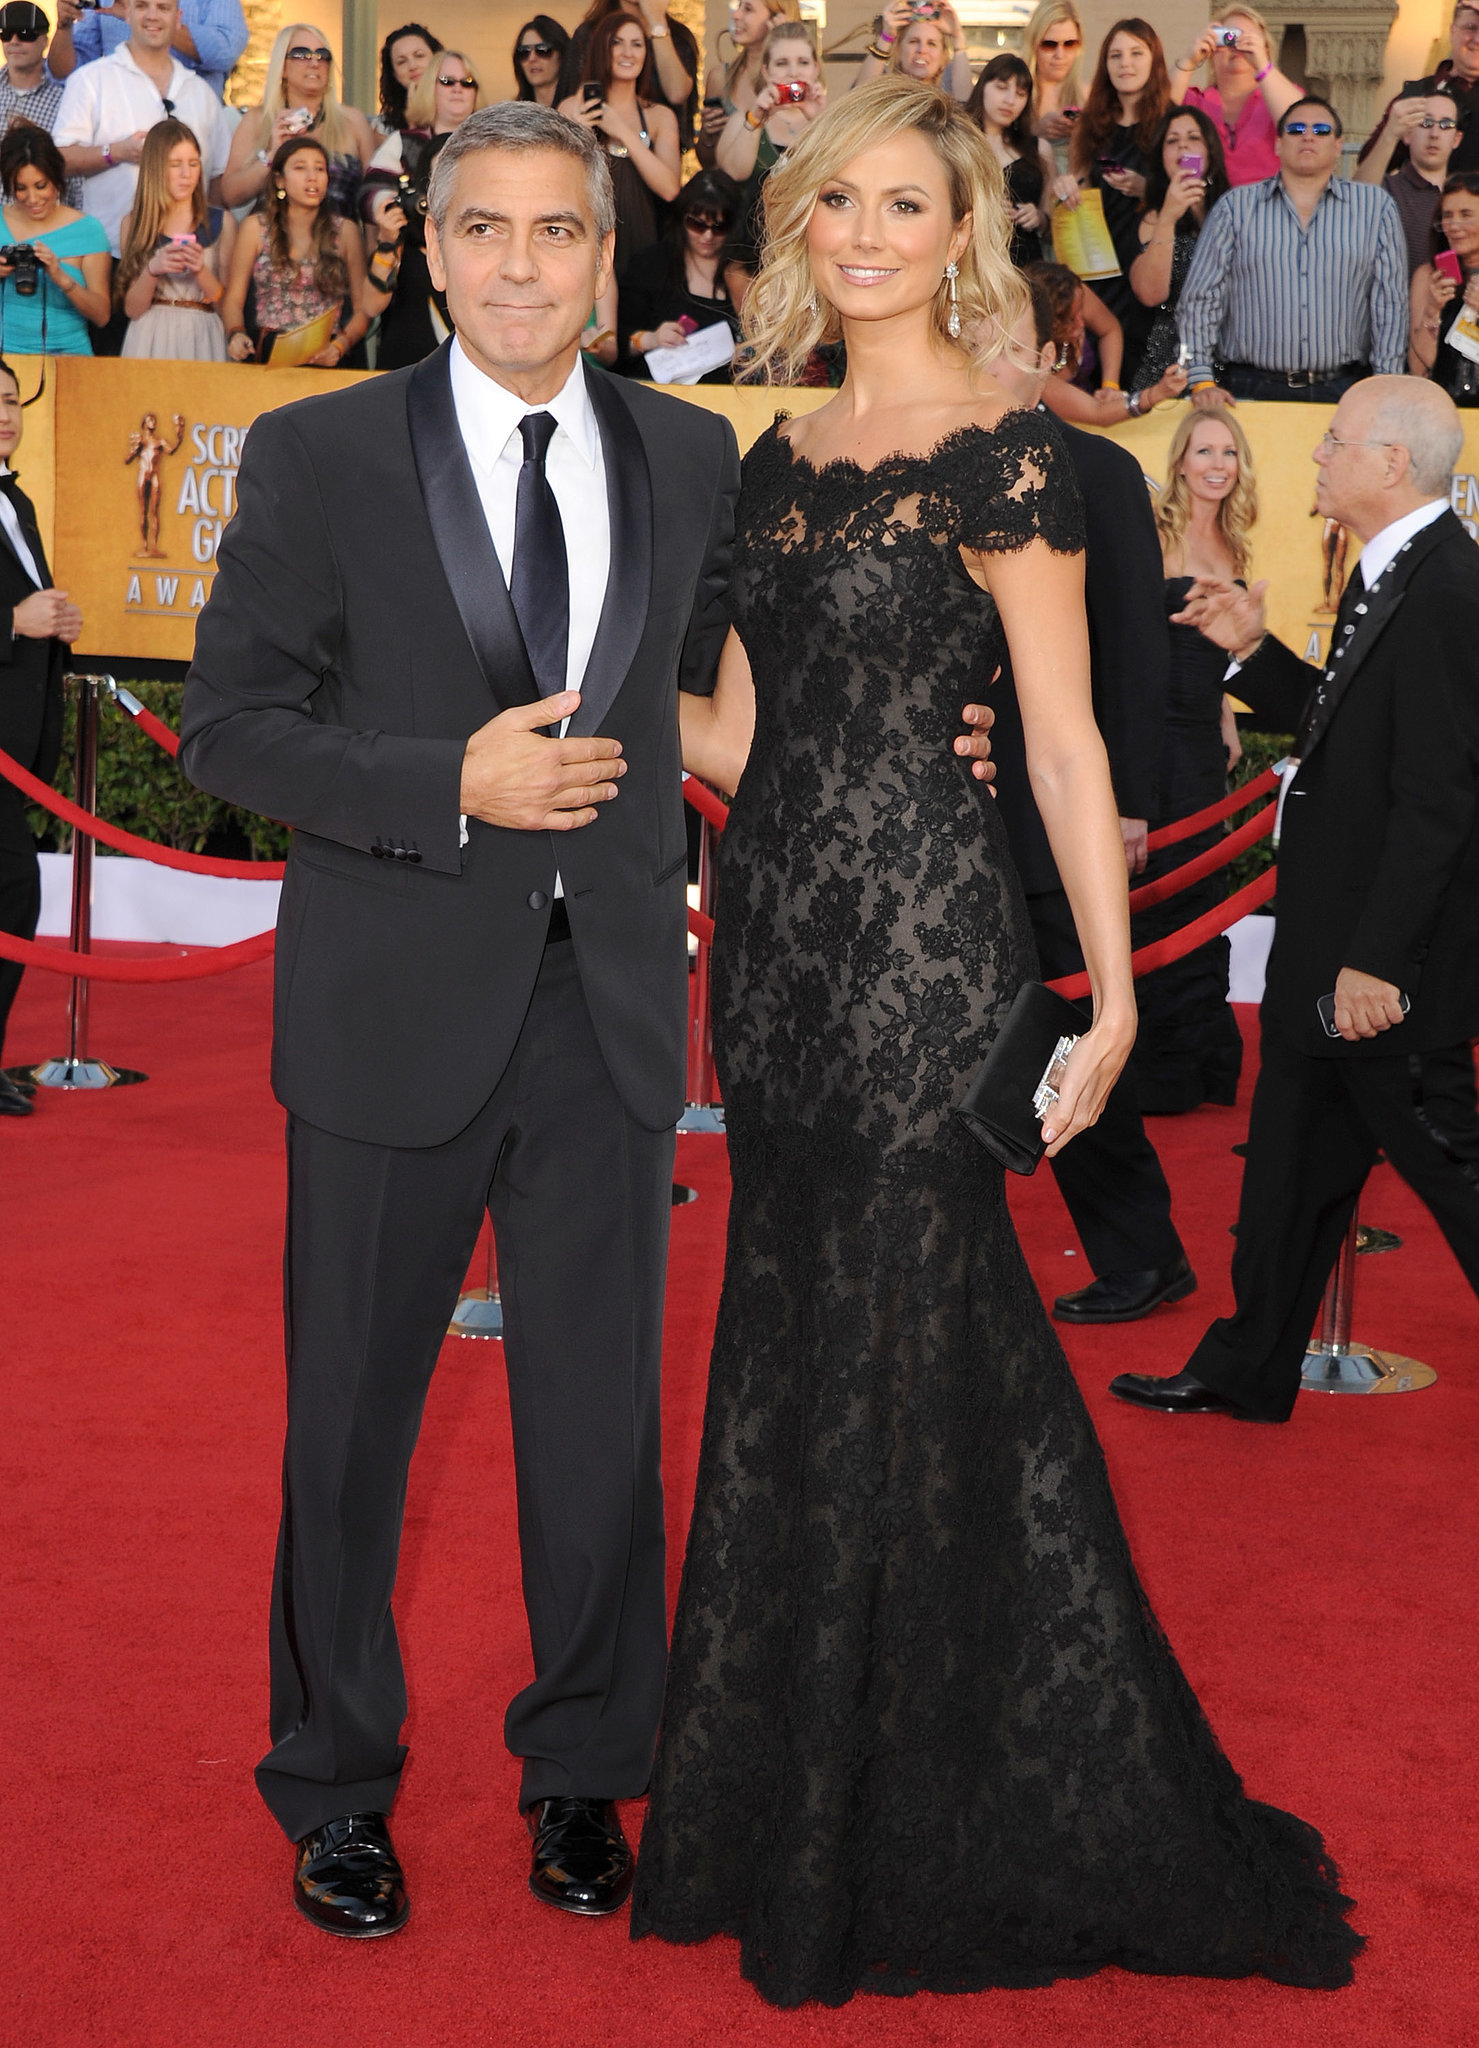 Stacy Keibler at the 2012 SAG Awards